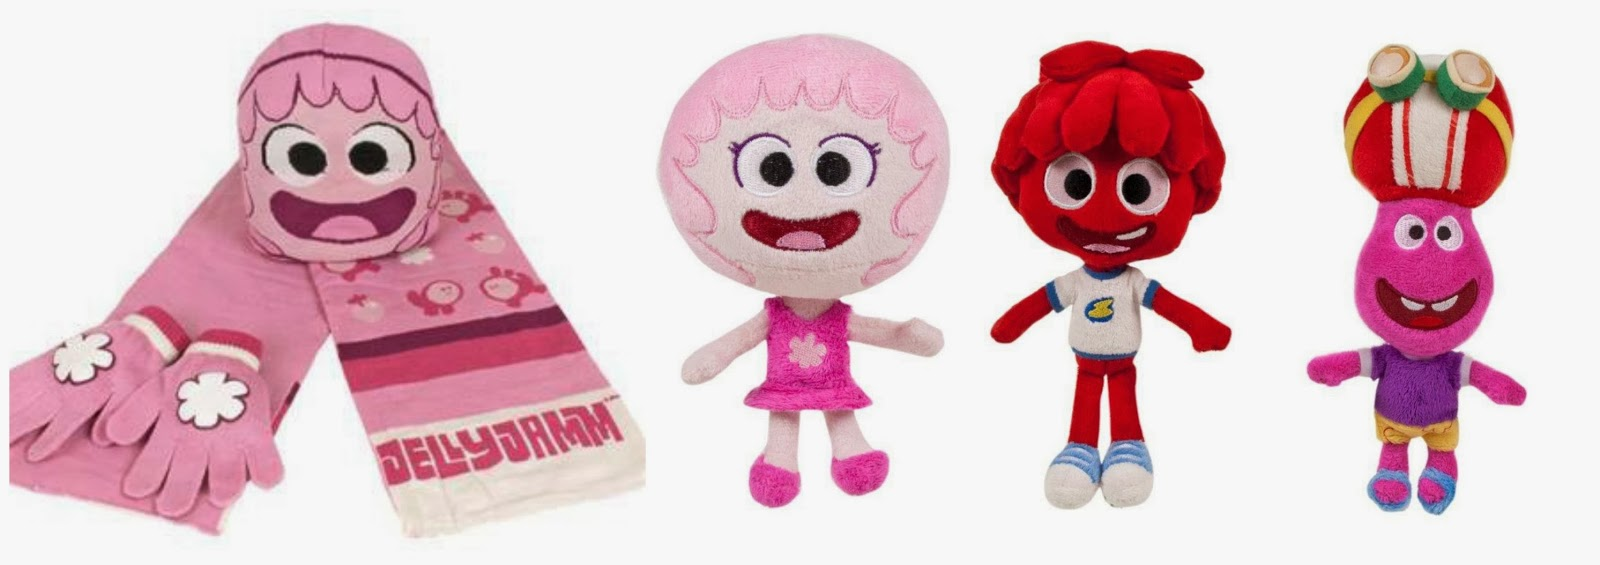 Jelly Jamm prizes - Rita Hat and Scarf Mini Rita Bello Gooomo Plush toys